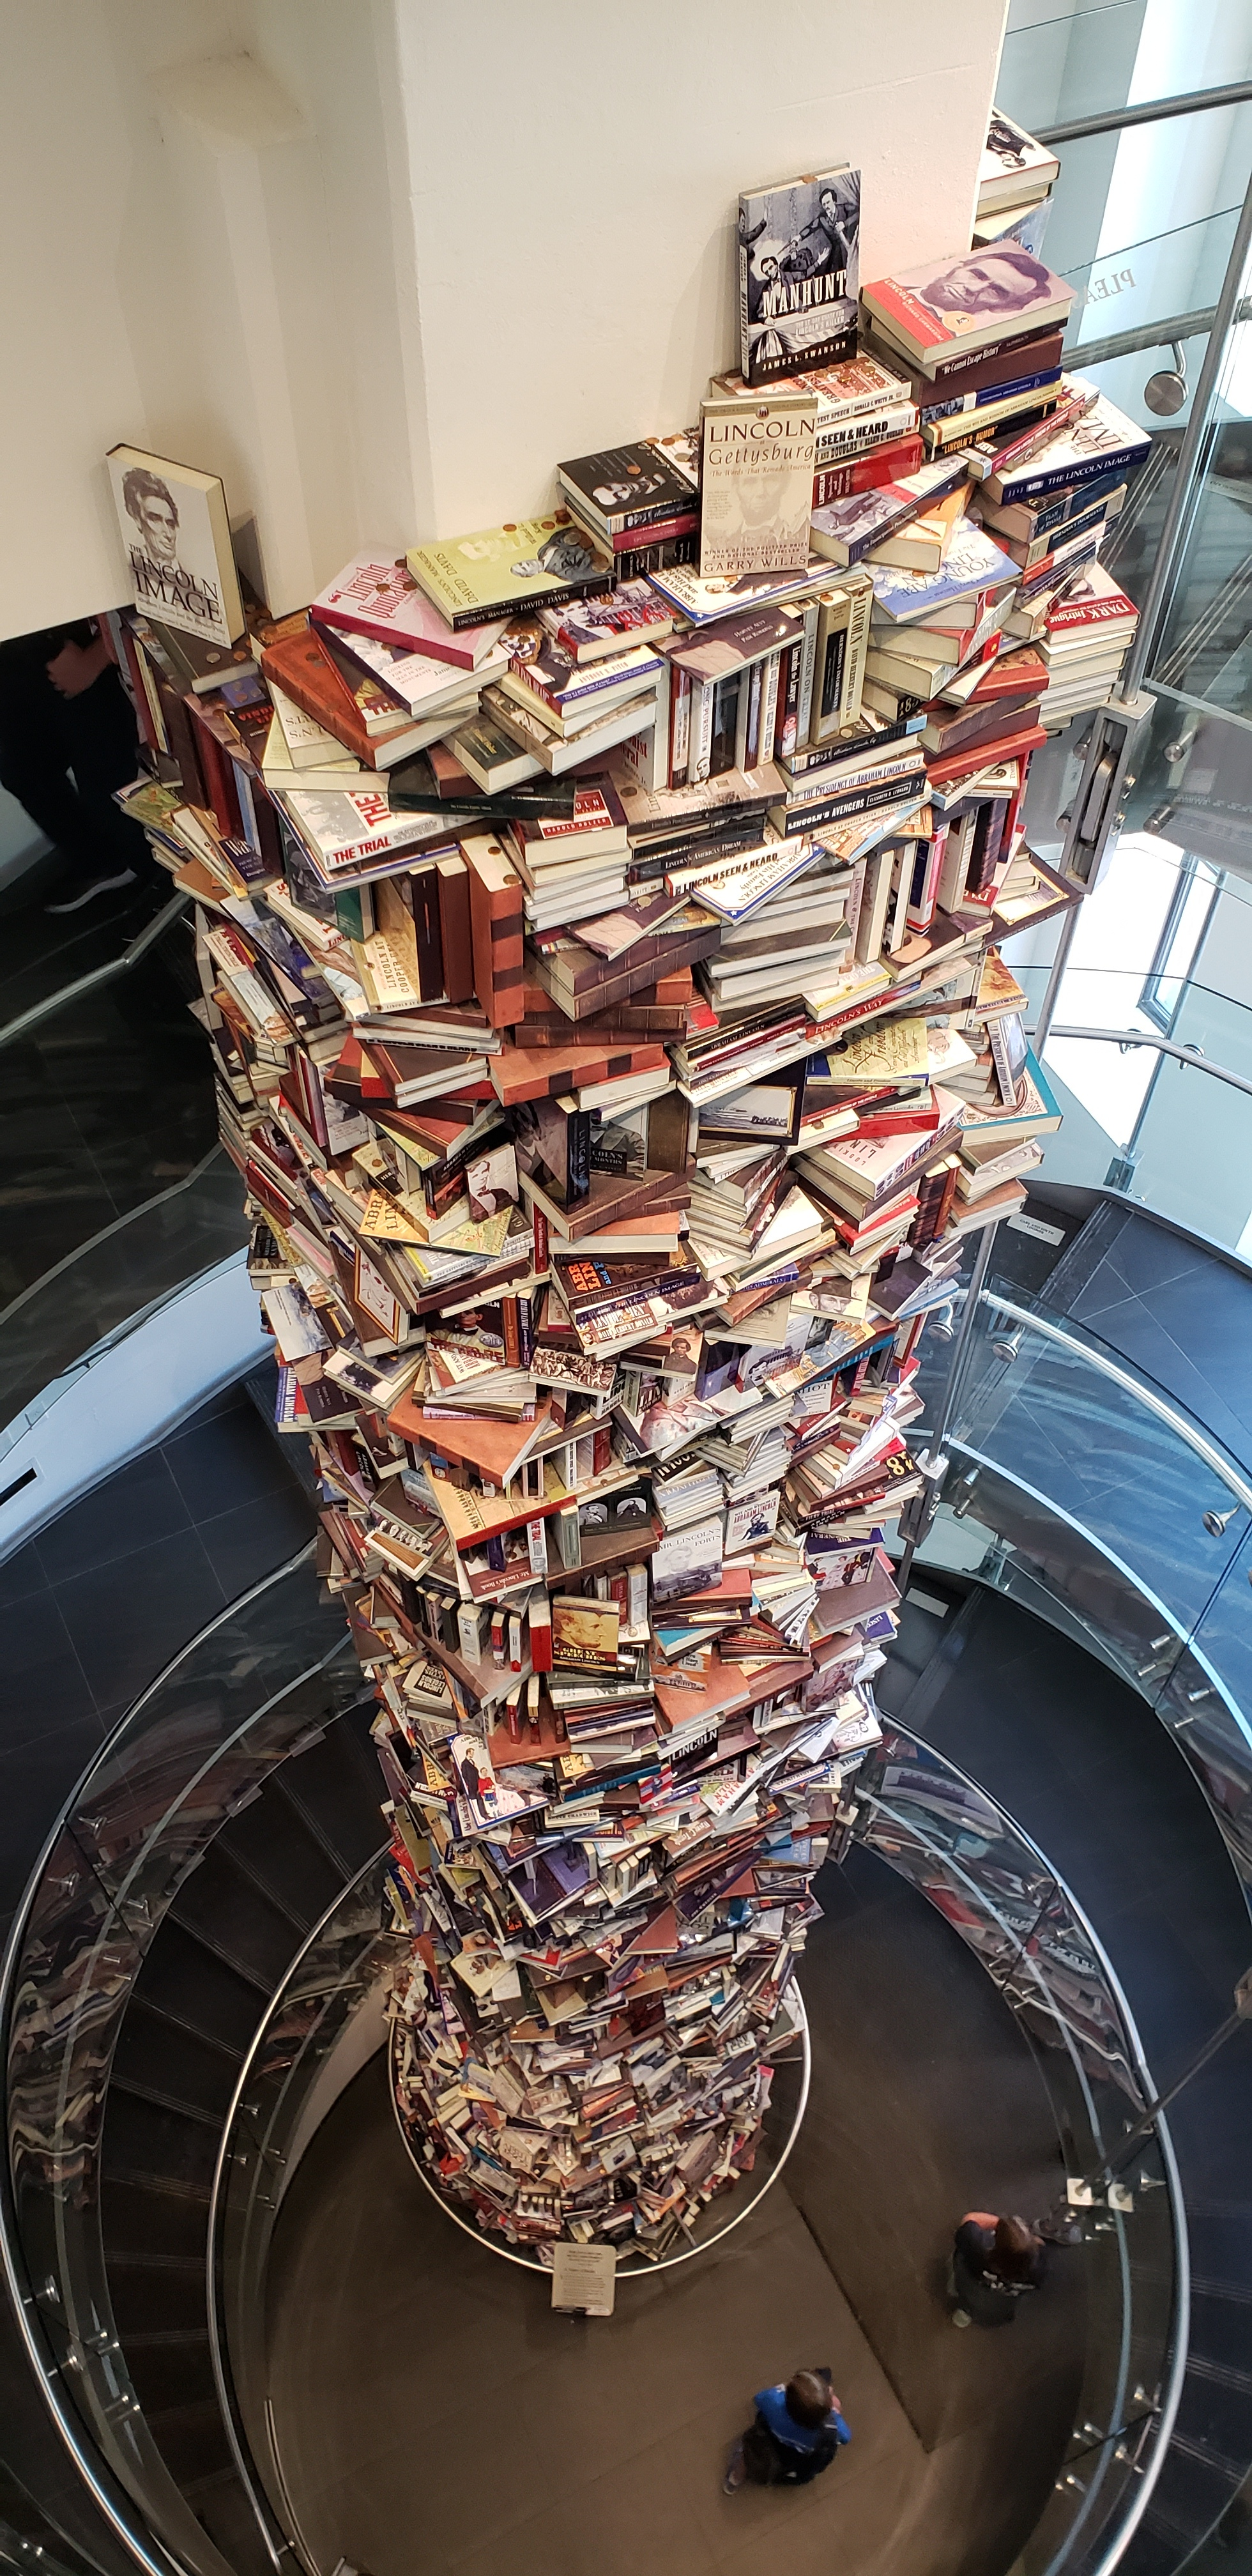 This is a tower of 15,000 books that have been written about Abraham Lincoln. Have you read one? The tower, standing 34 feet tall and 8 feet around, can be seen at the Ford's Theatre Center for Education and Leadership in Washington, D.C.